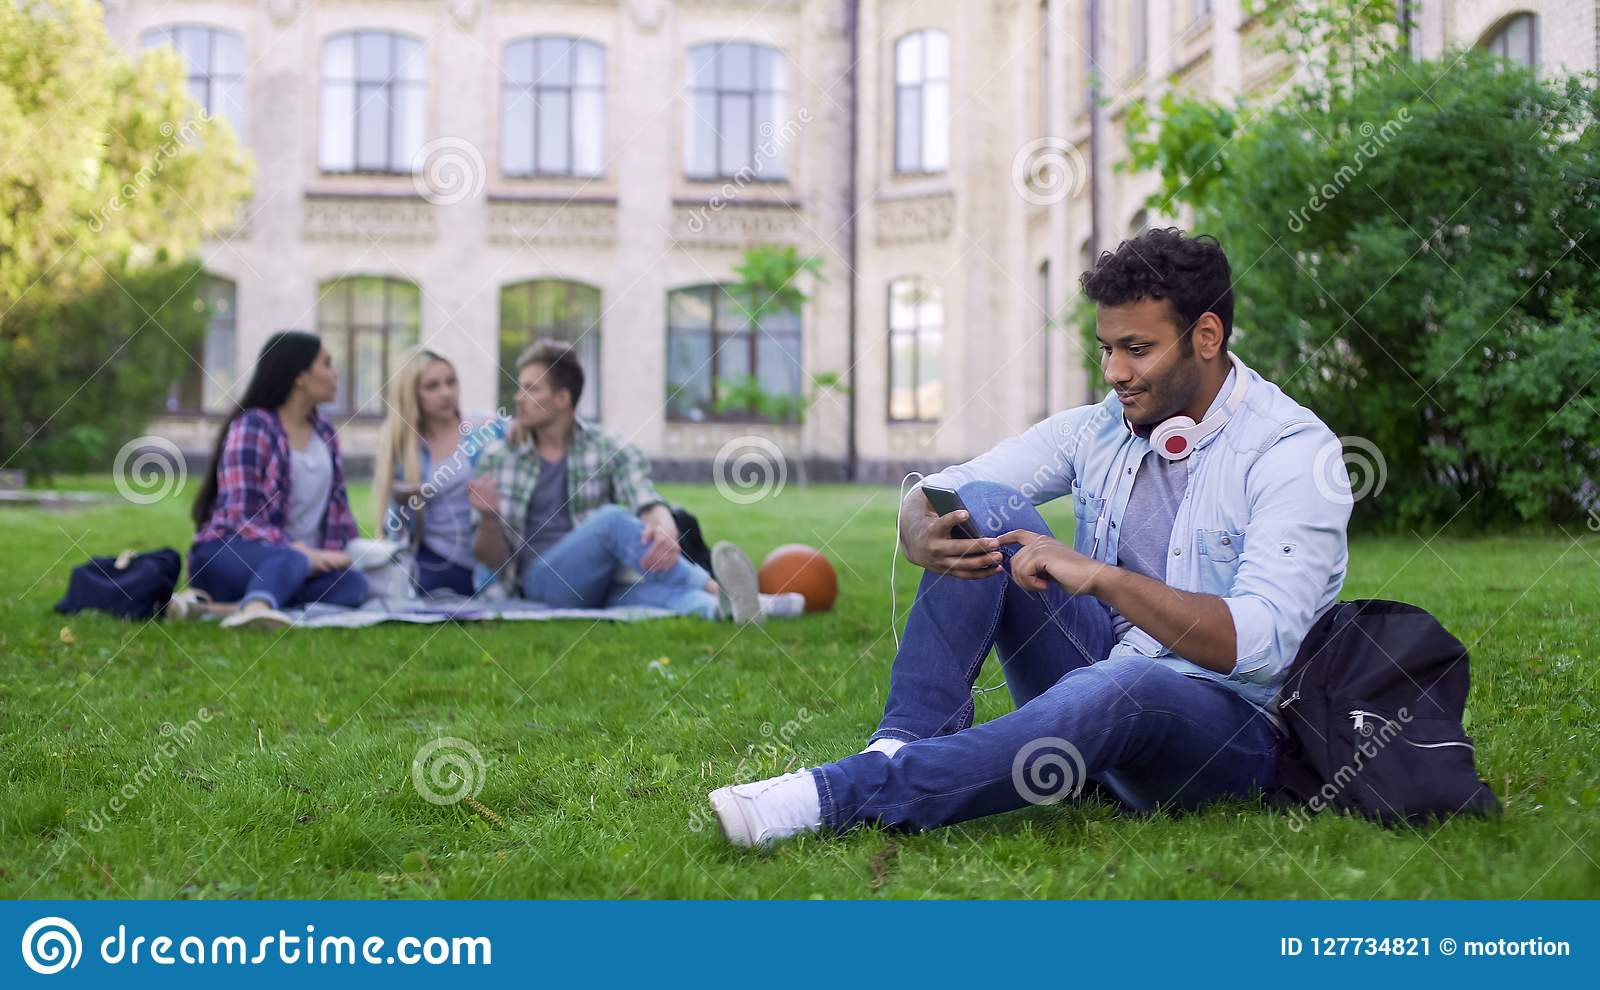 Hispanic male student sitting on grass and using cellphone, app for acquaintance